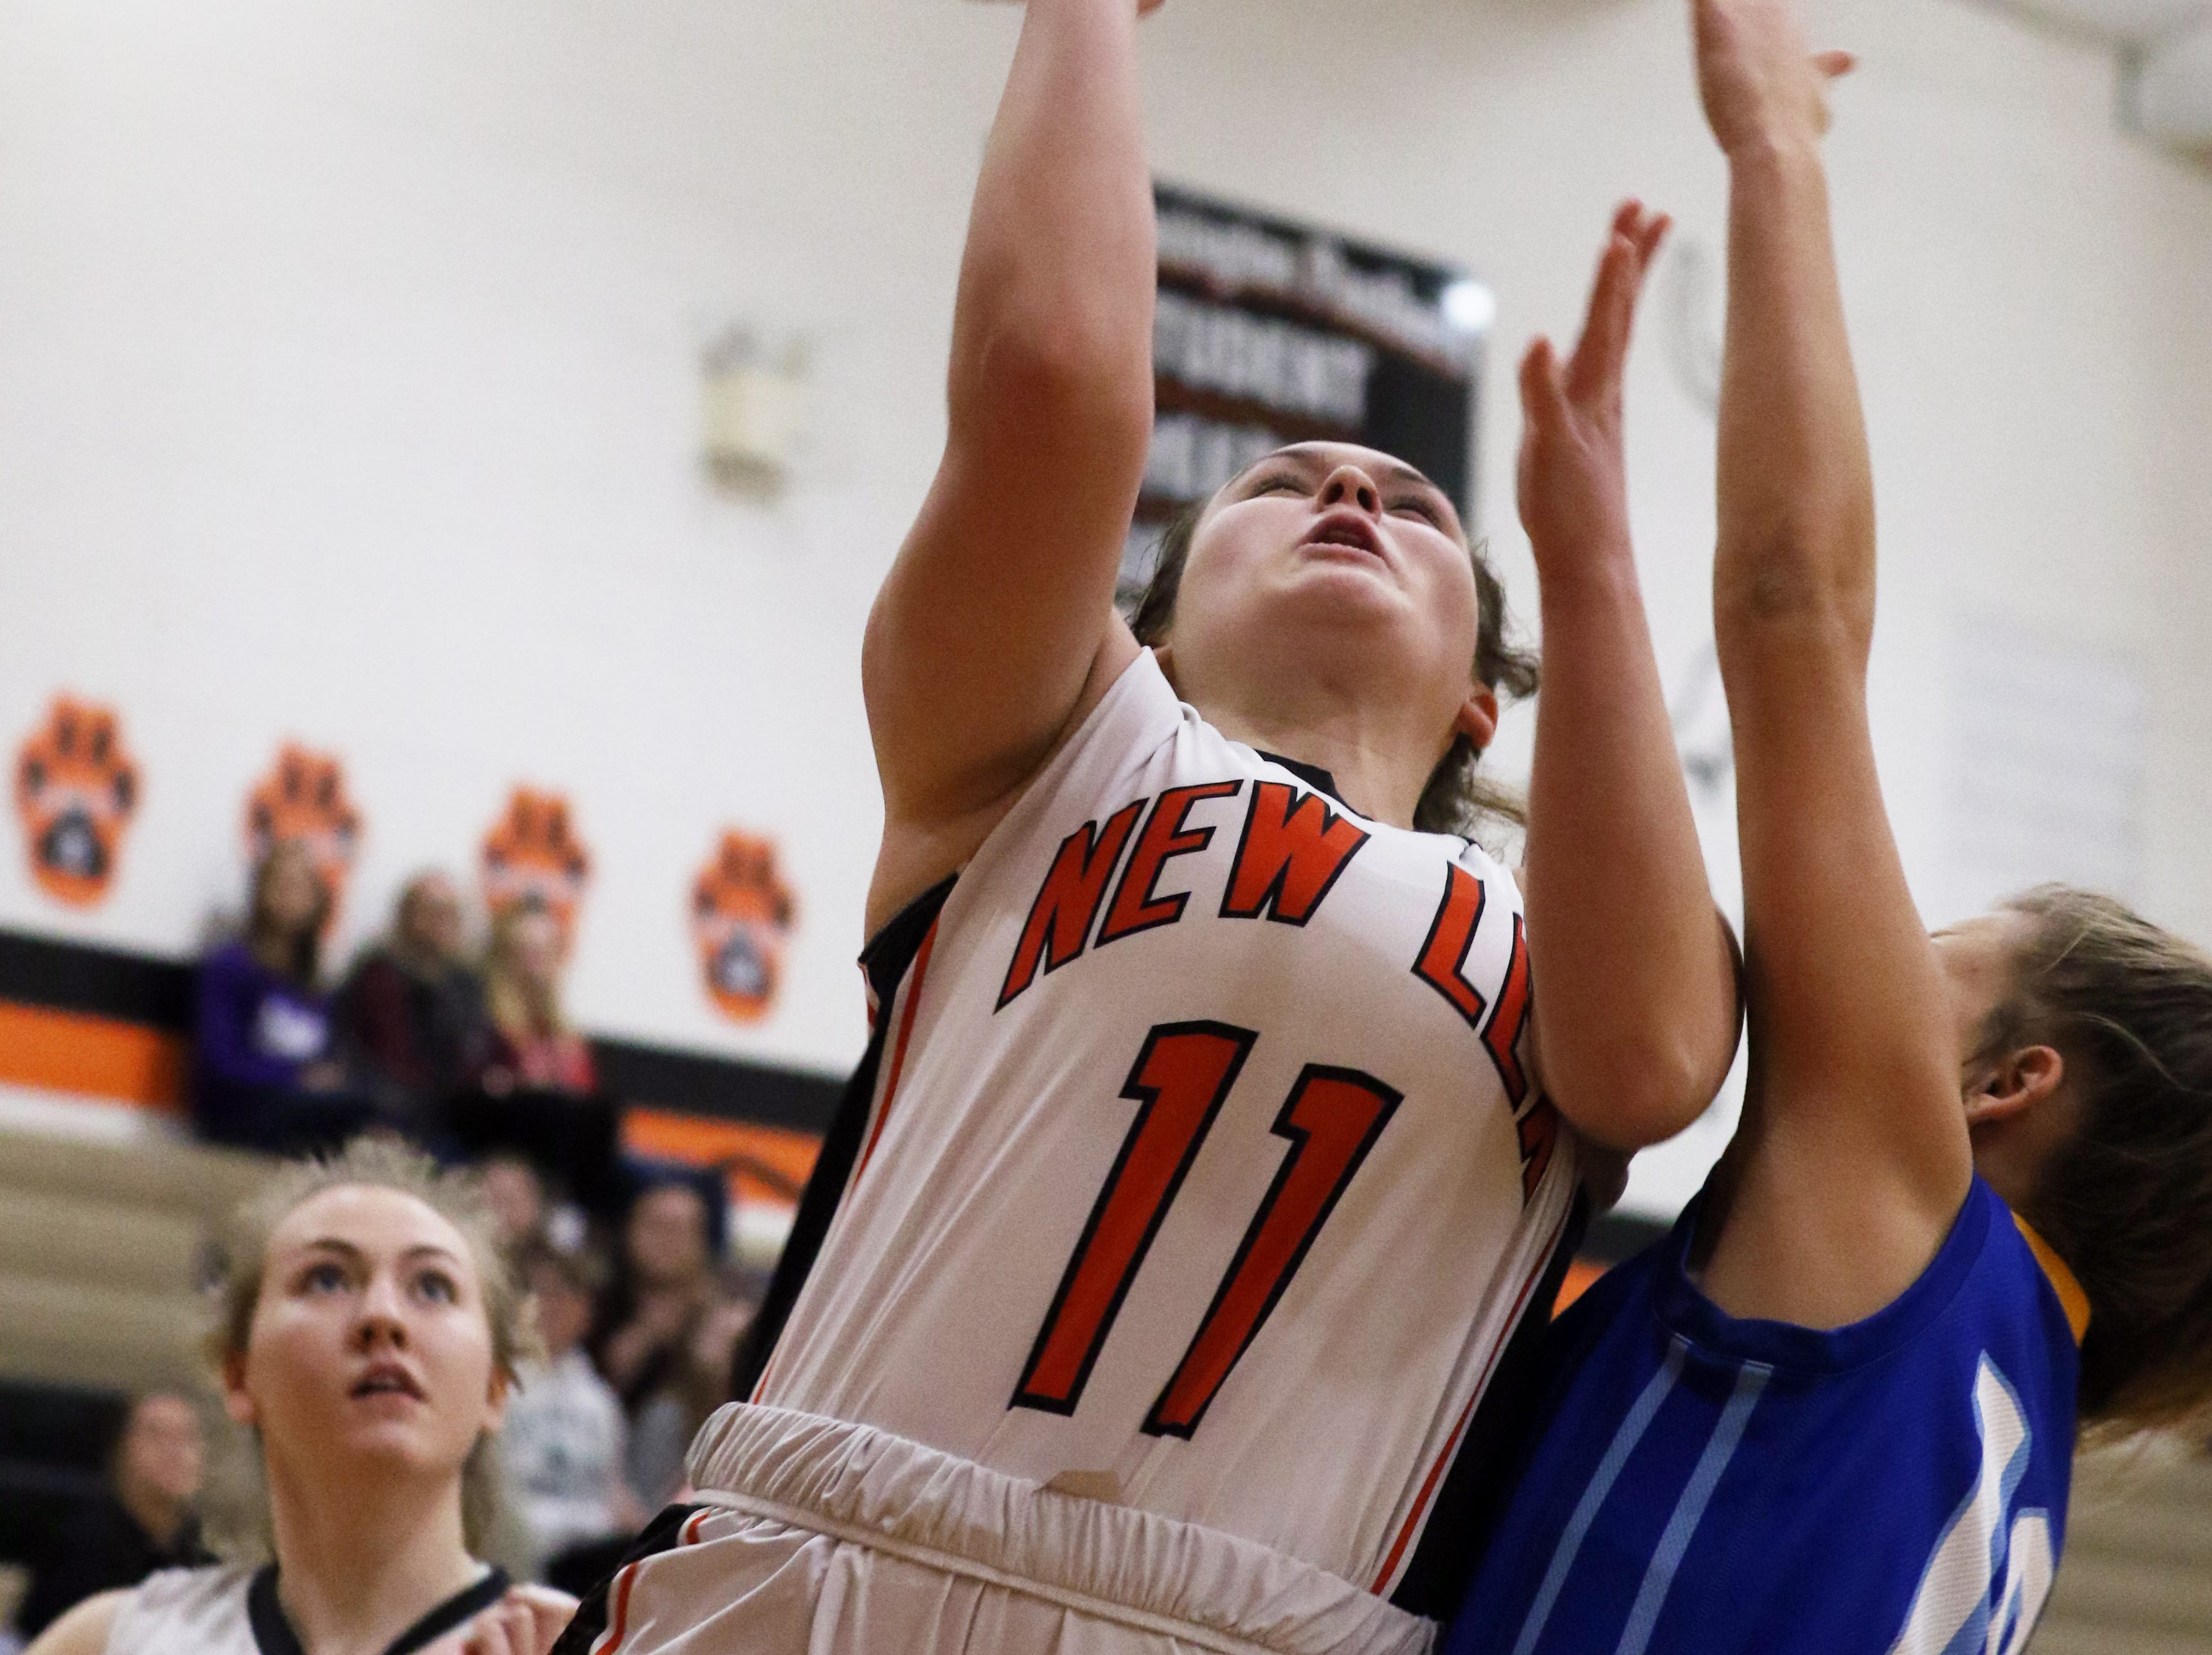 New Lexington's Haleigh Sammons puts up a shot against West Muskingum.